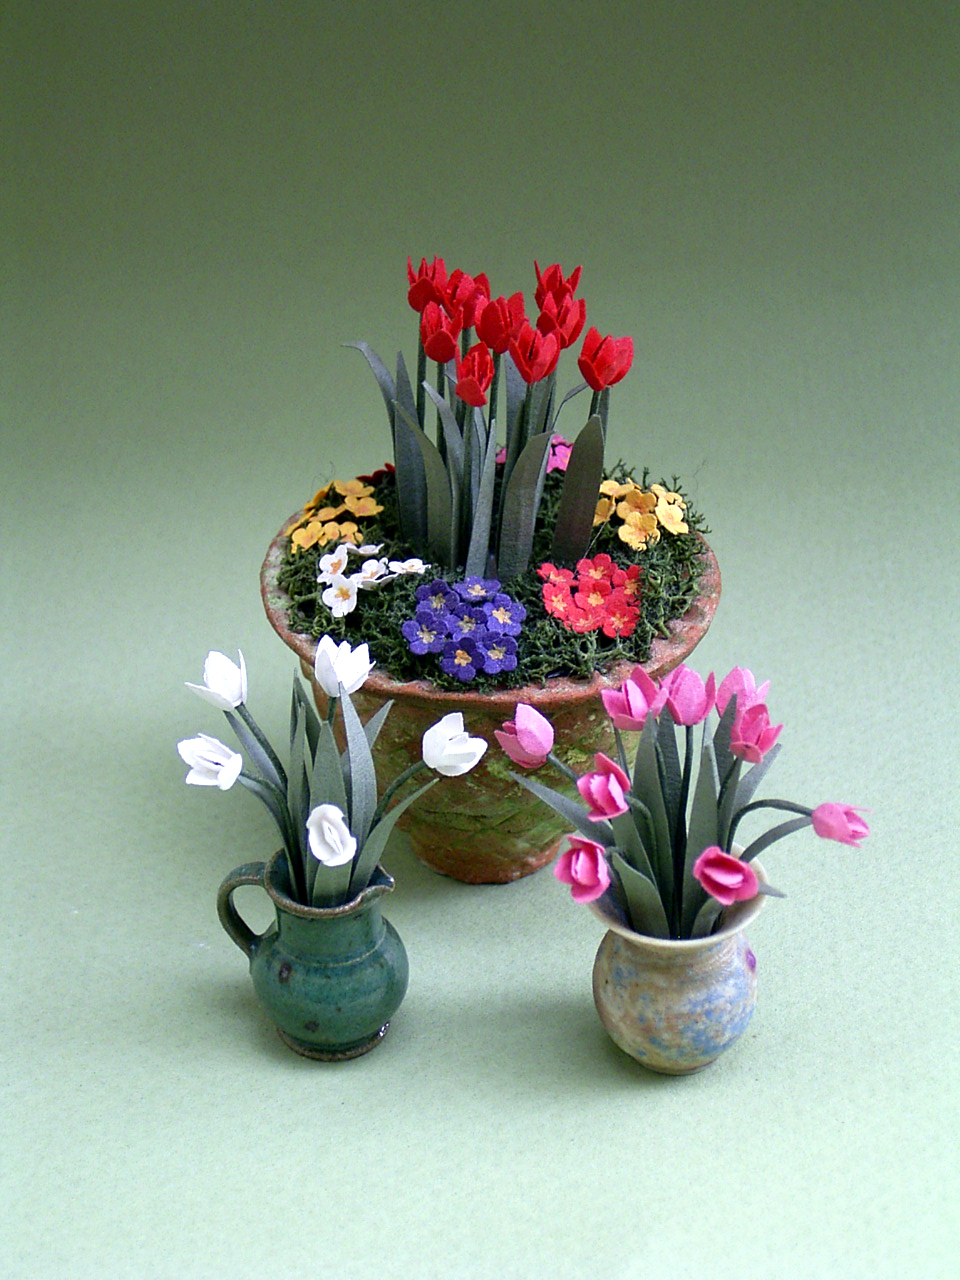 The Miniature Garden Spring Flowers